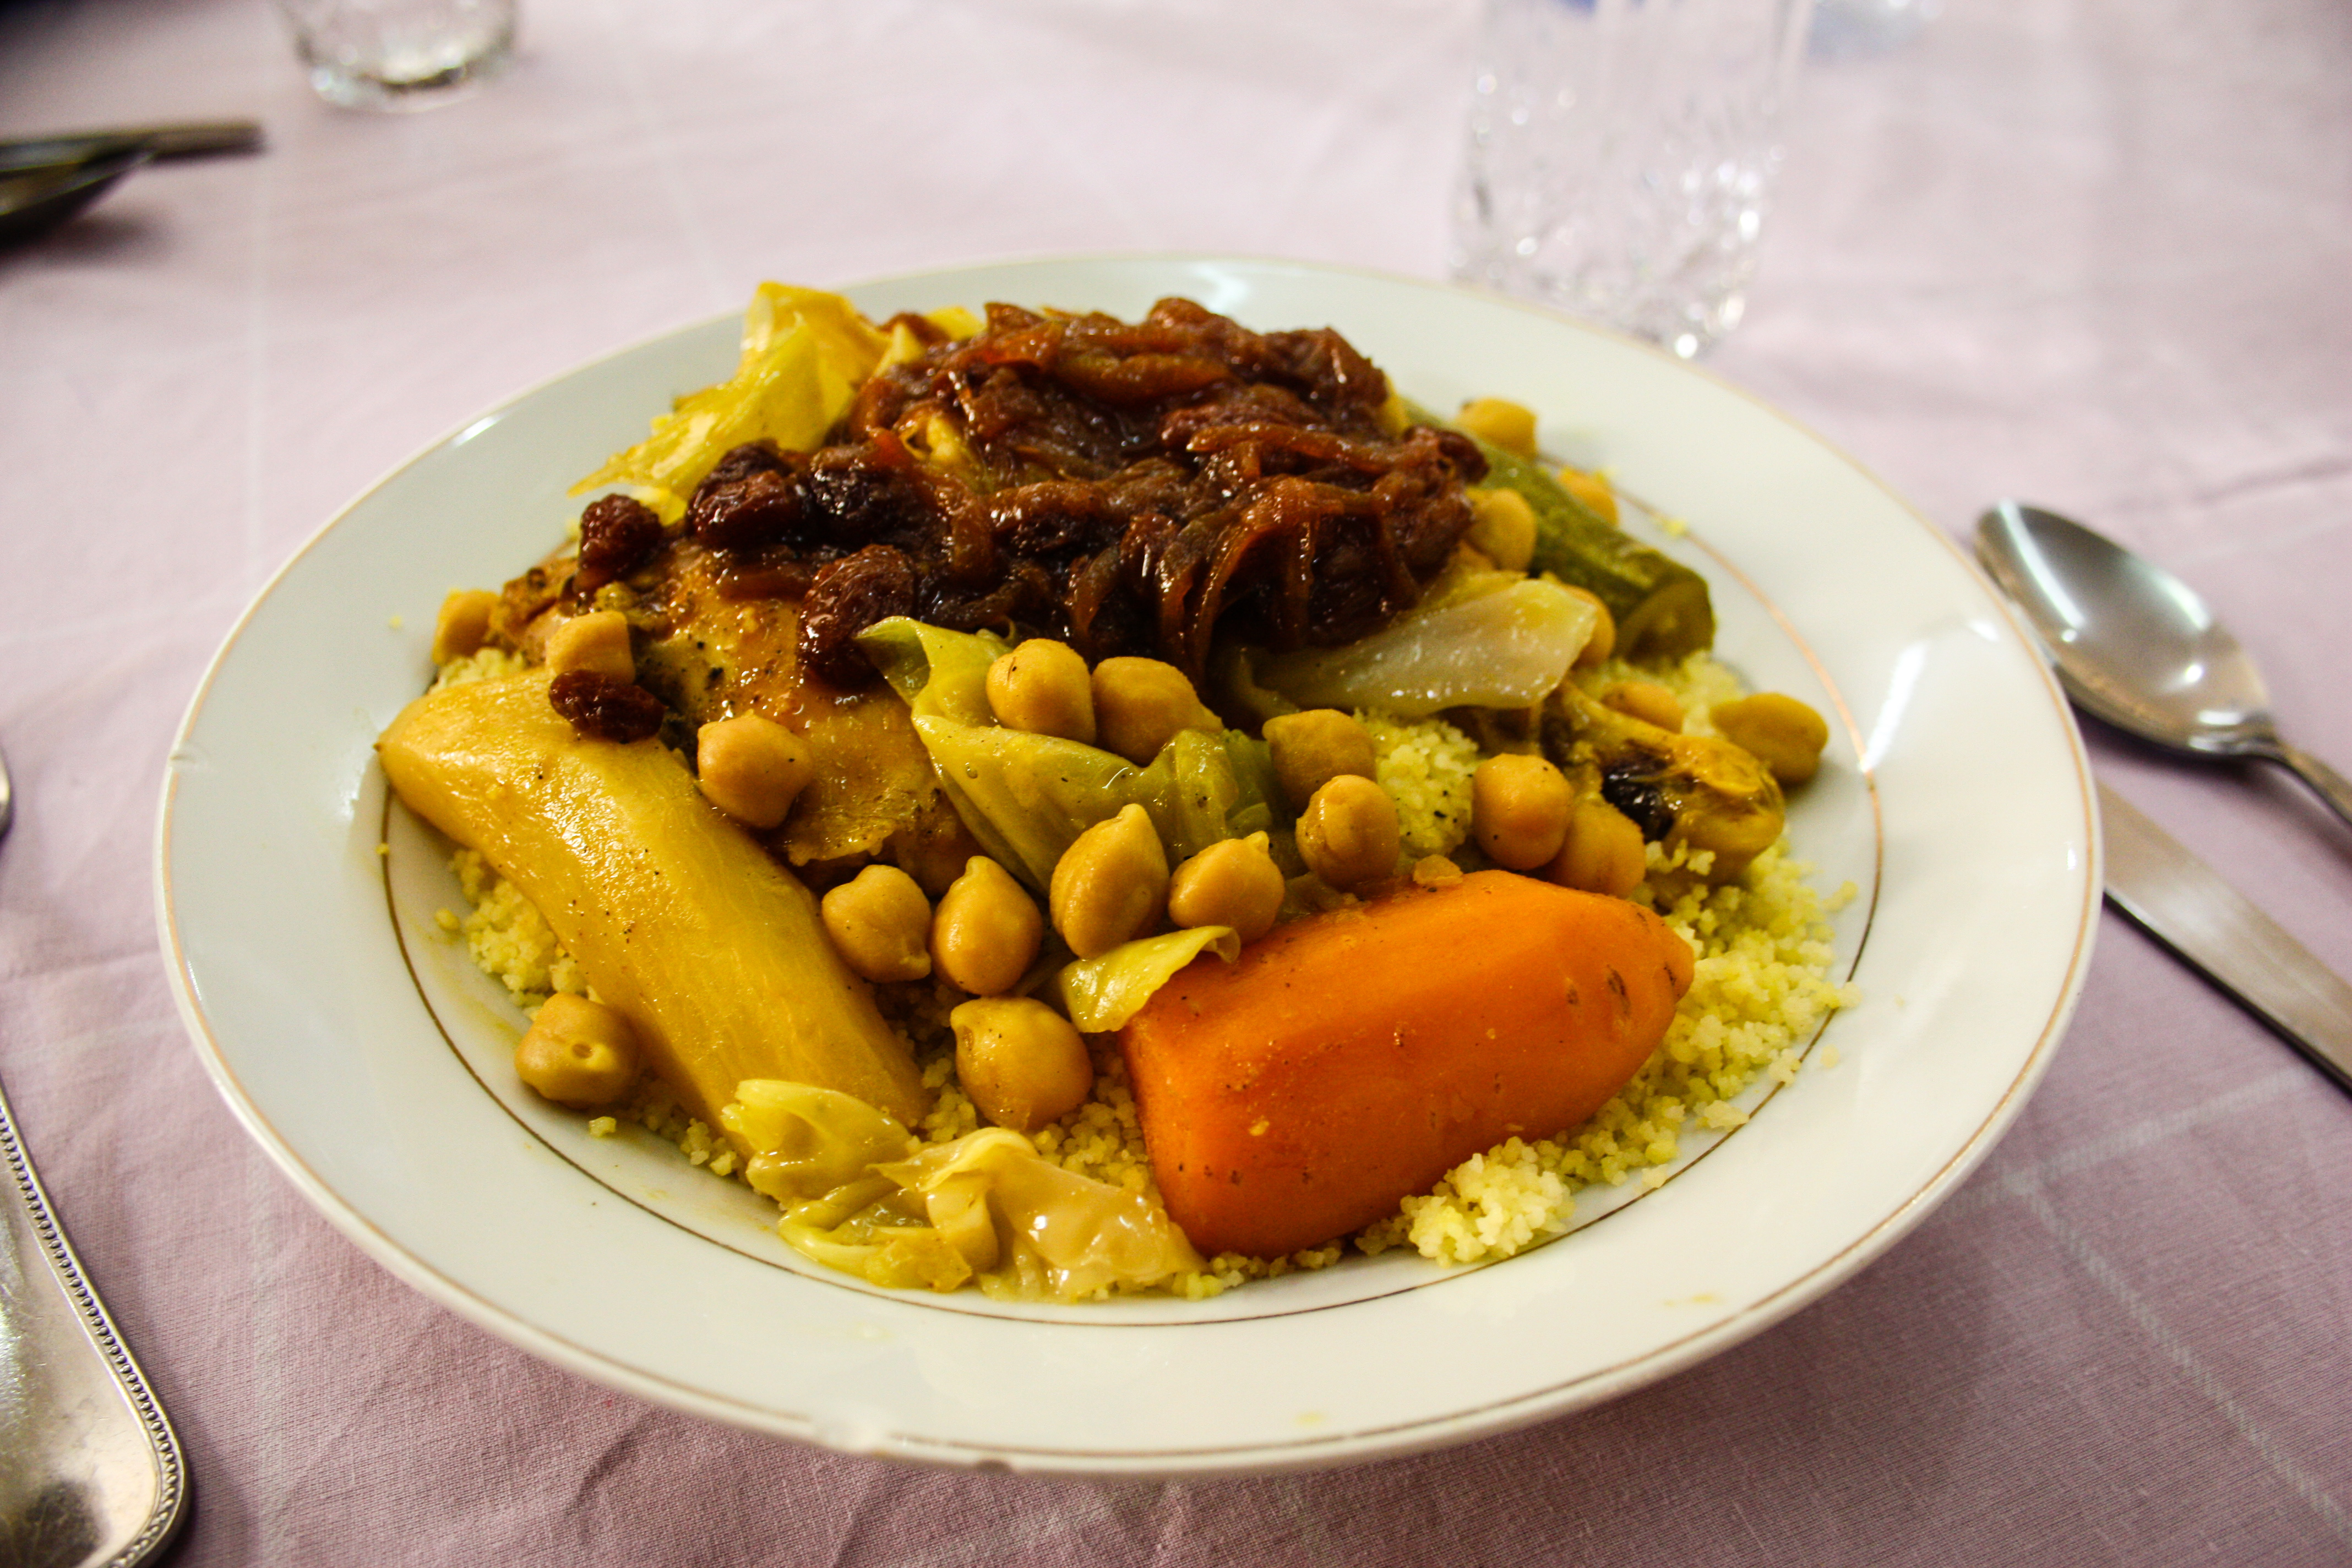 Food from Chefchaouen, Morocco, Northern Africa